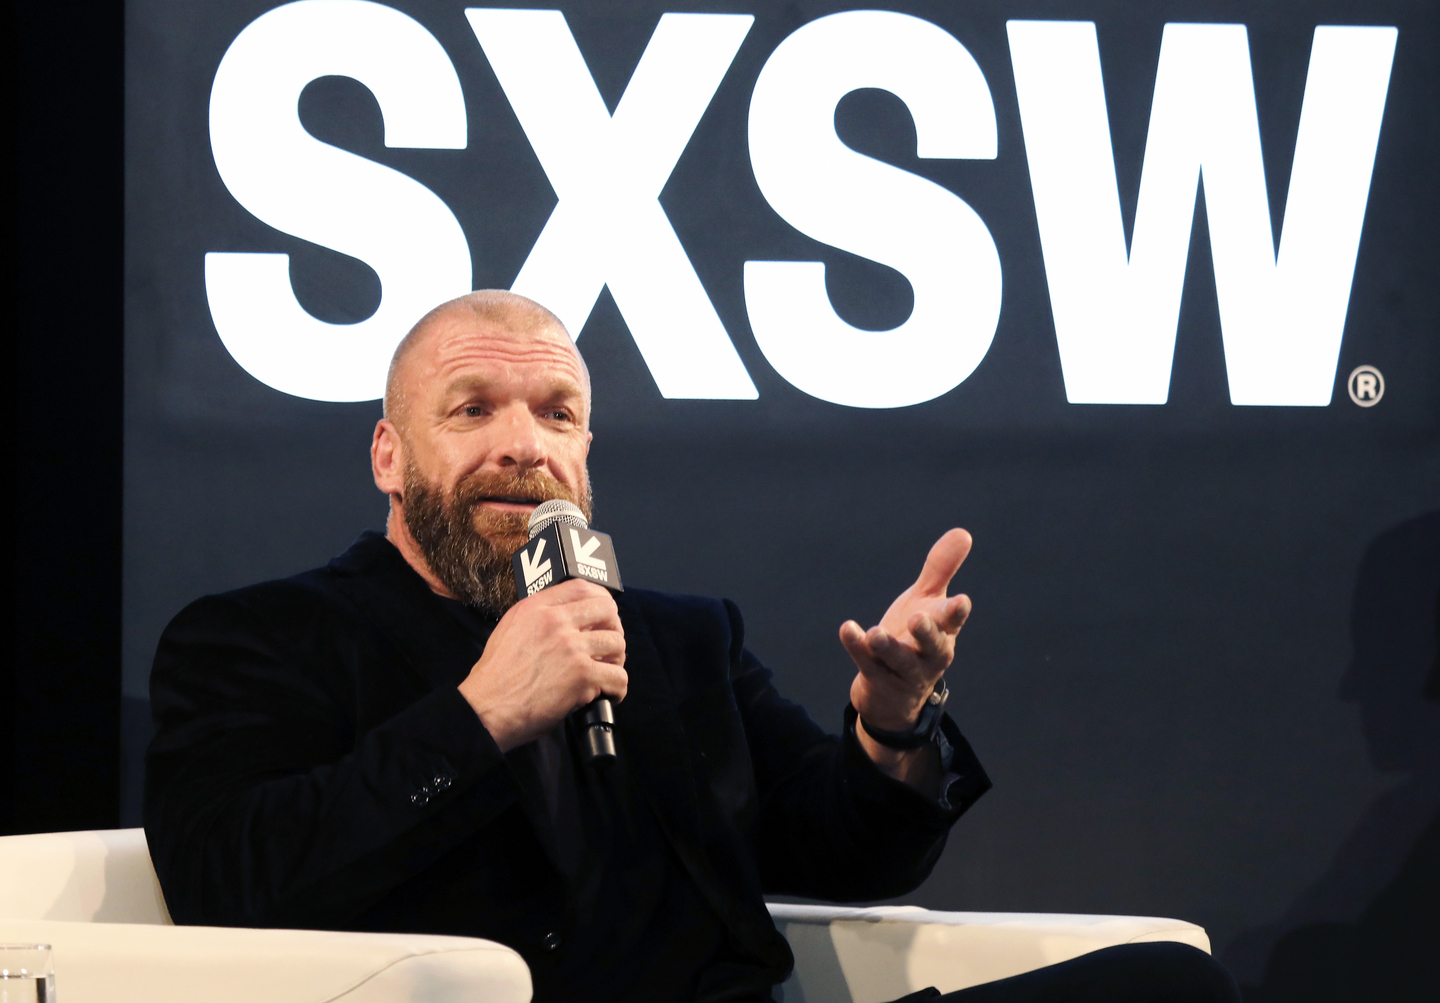 Paul Michael Levesque aka Triple H at the Featured Session: The Women's Evolution in WWE and Beyond.